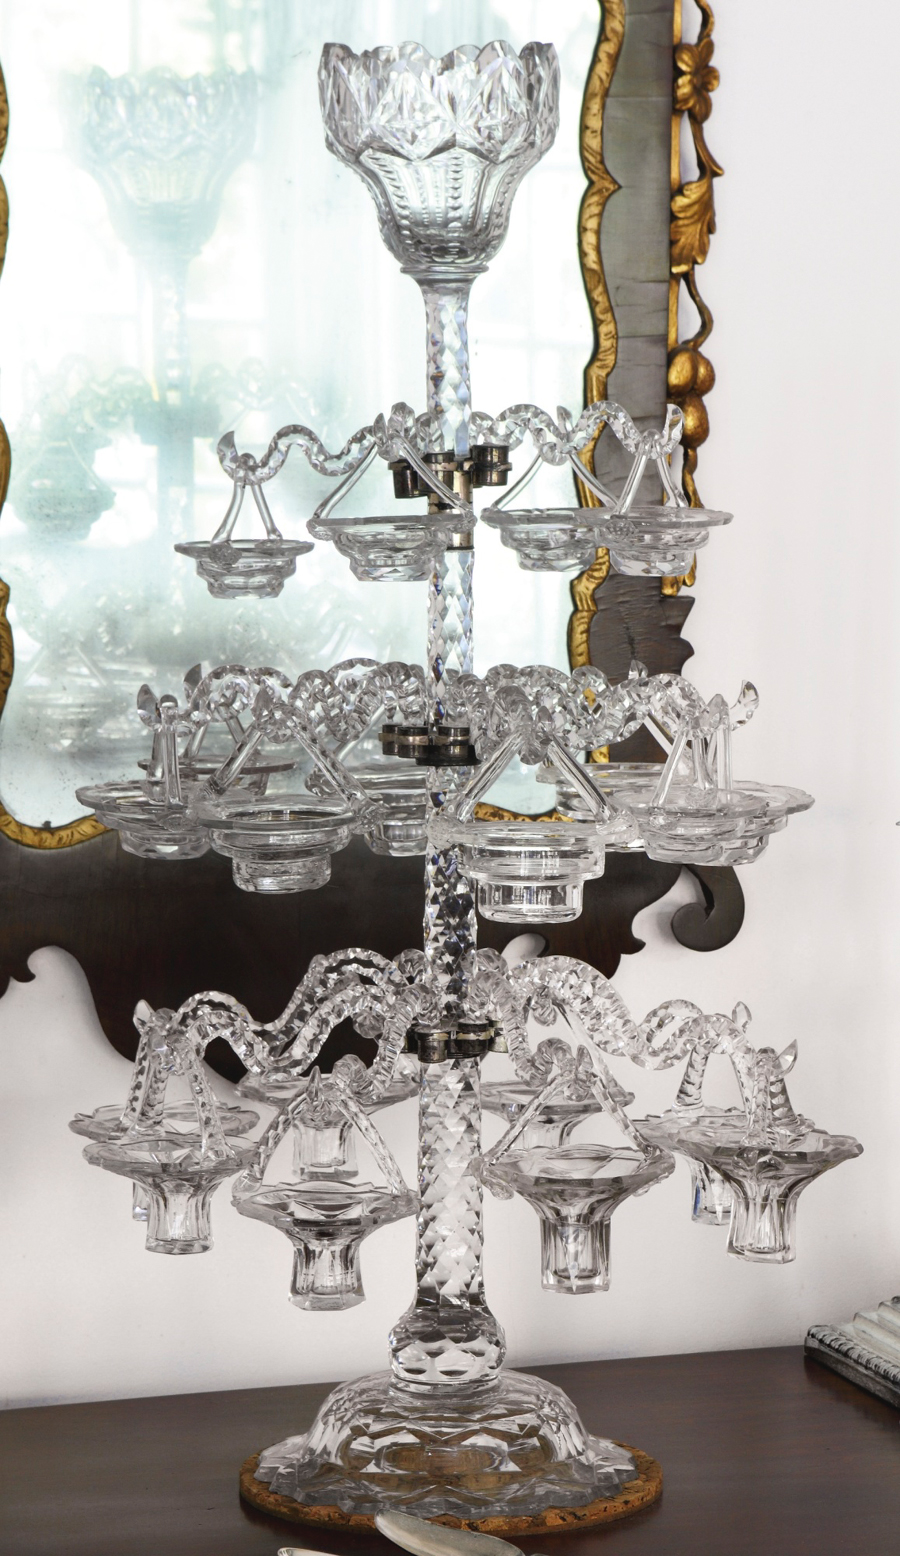 Another rare item, this 26-inch-tall glass epergne, $ 87,500 ($ 70/90,000), is English and dates to the fourth quarter of the Eighteenth Century. With a Montreal history, it was formerly in the collection of Saidye Bronfman, matriarch of the Canadian family associated with the distiller Seagram's. Two baskets are modern replacements.